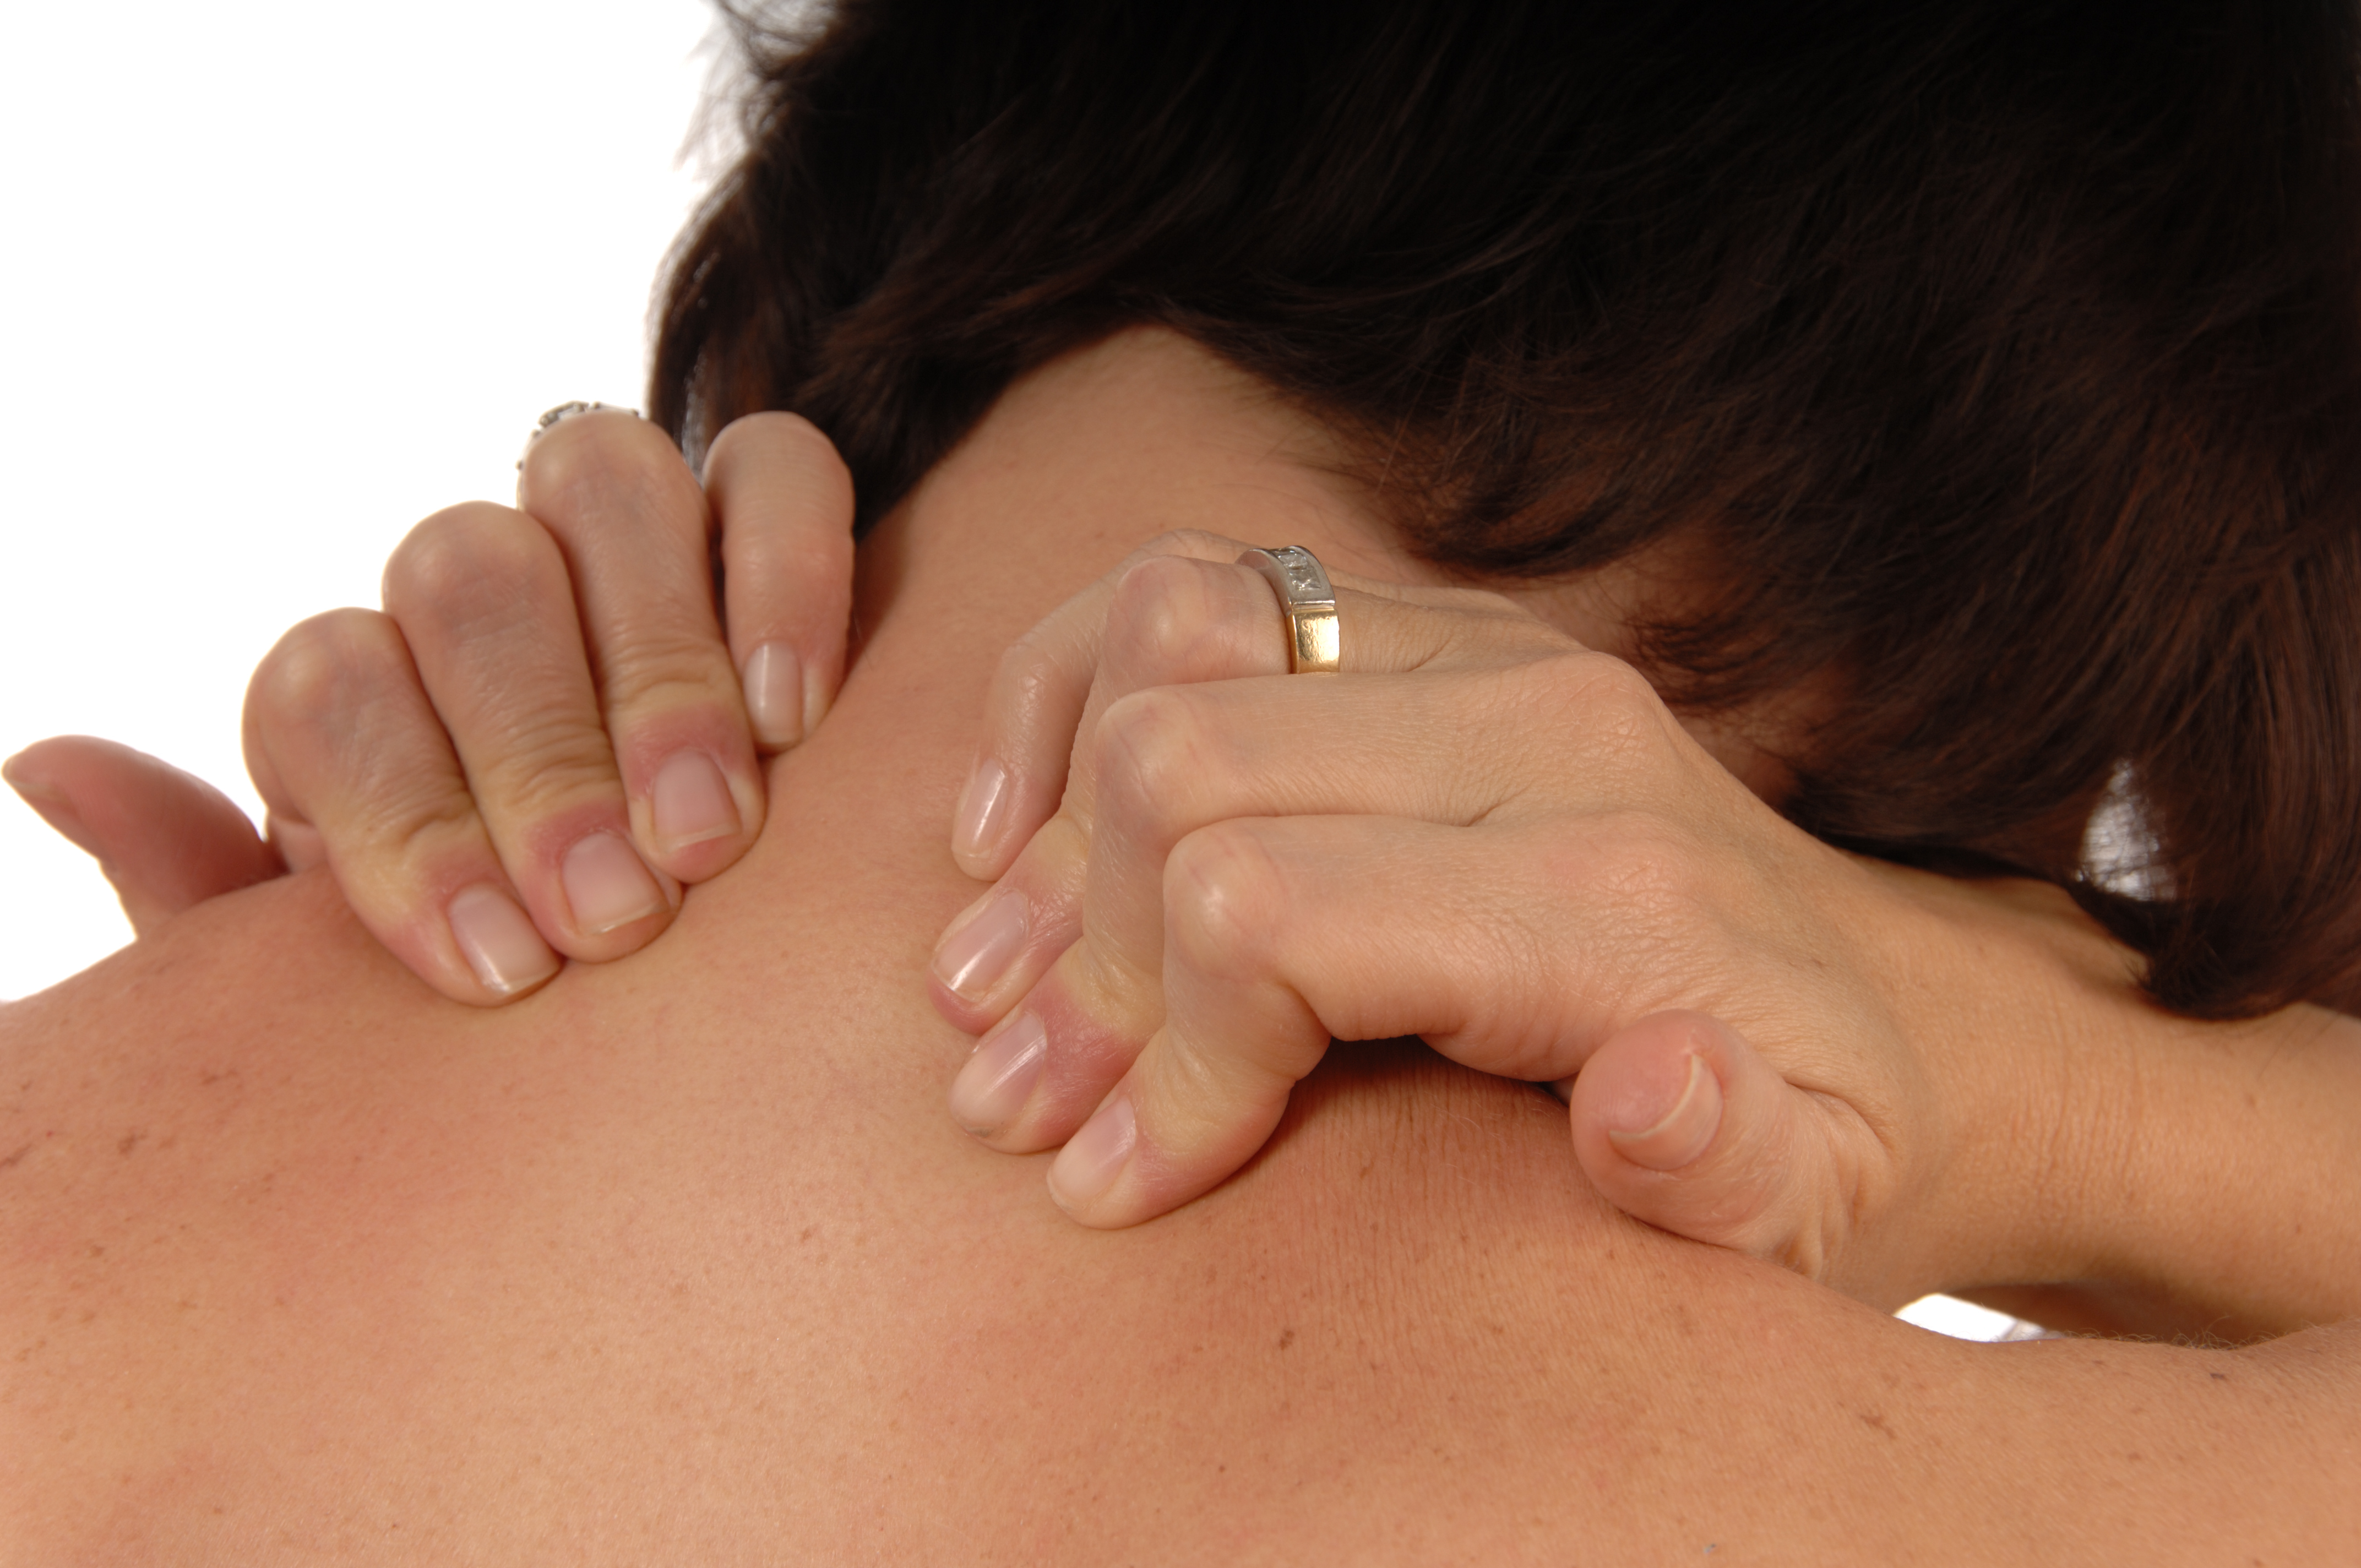 Why Does GERD Cause Pain Between the Shoulder Blades?